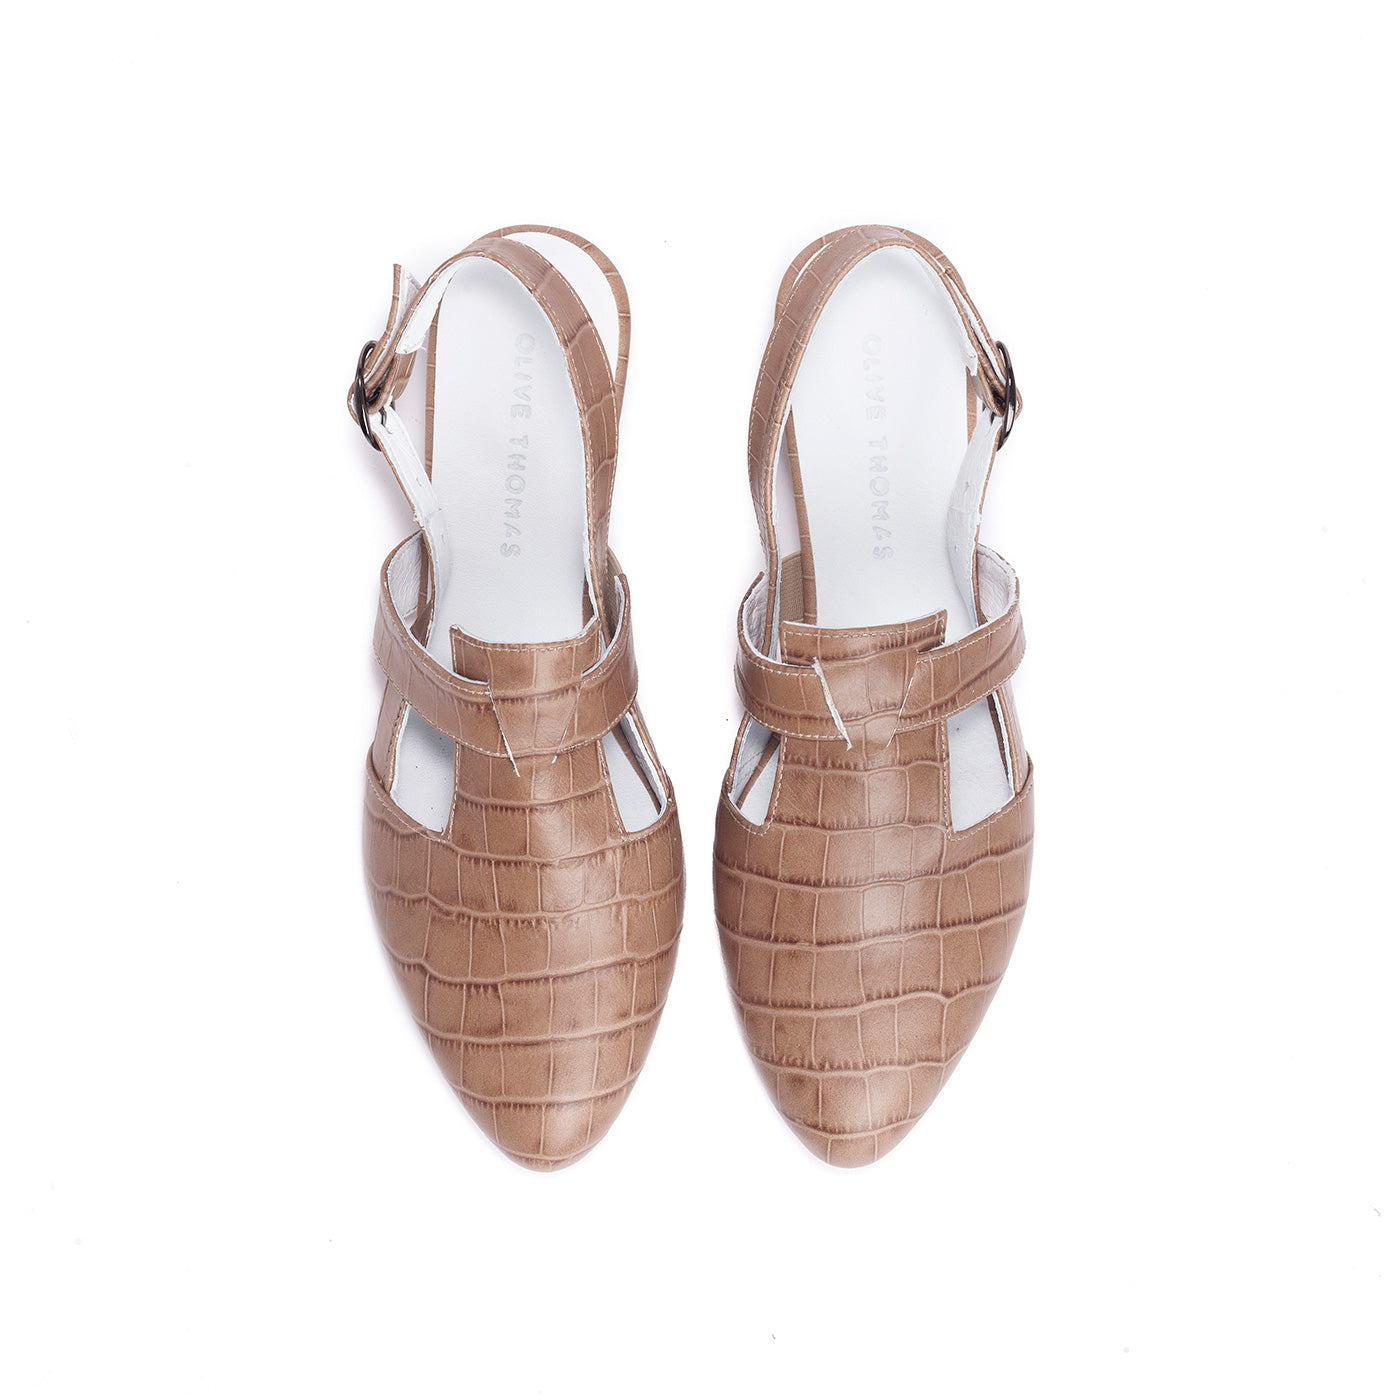 Francis - Closed Toe Slingbacks